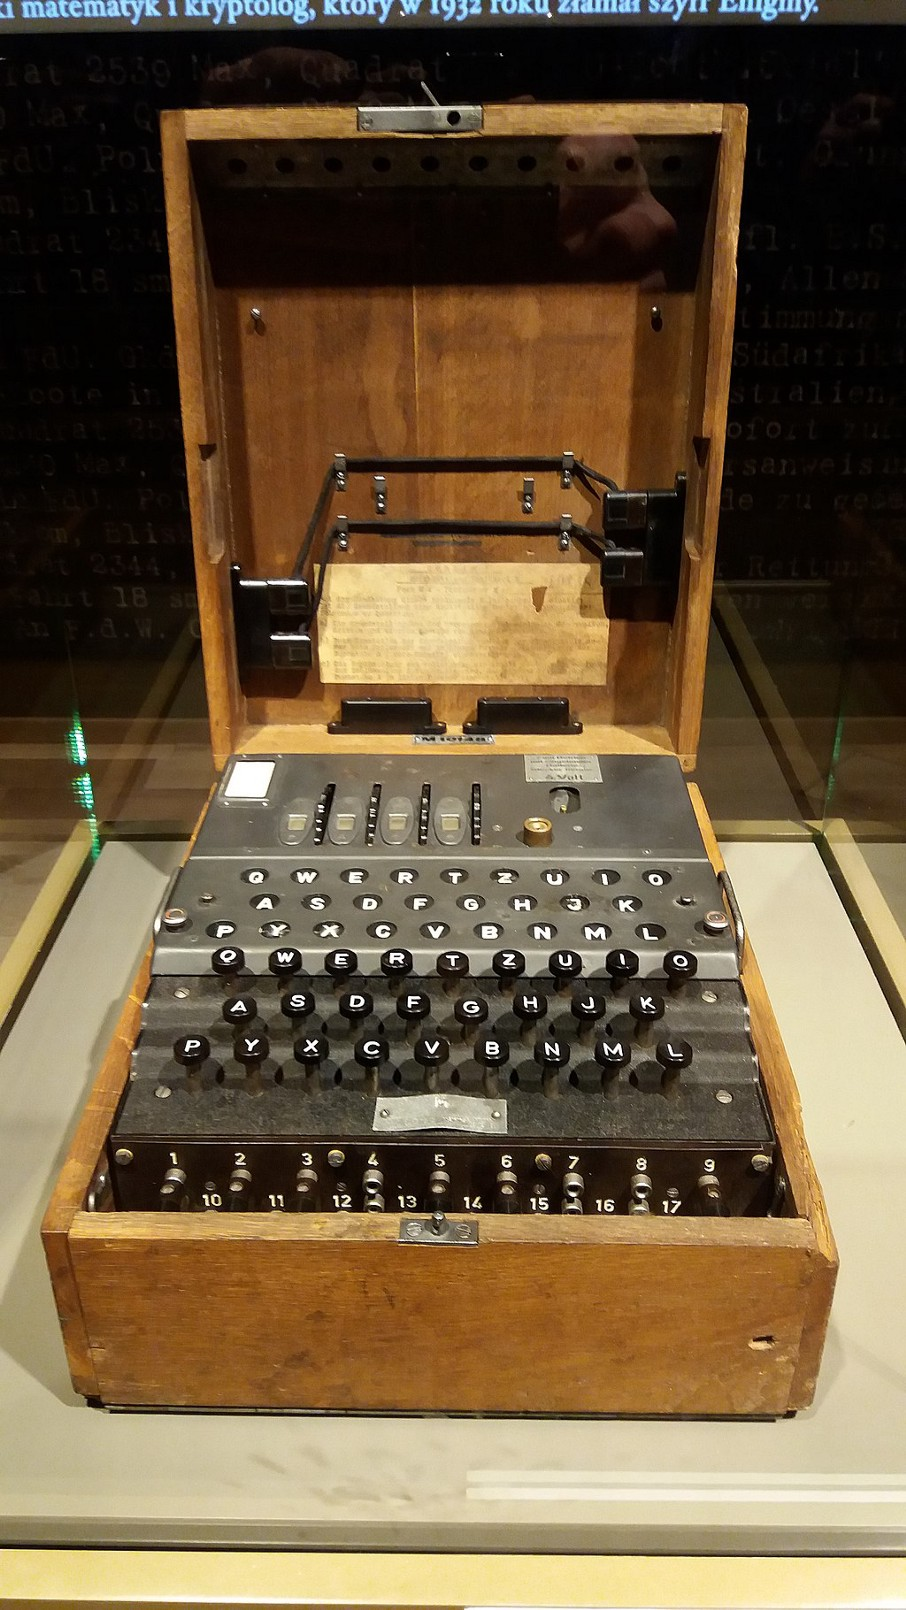 End of an era: the Enigma machine